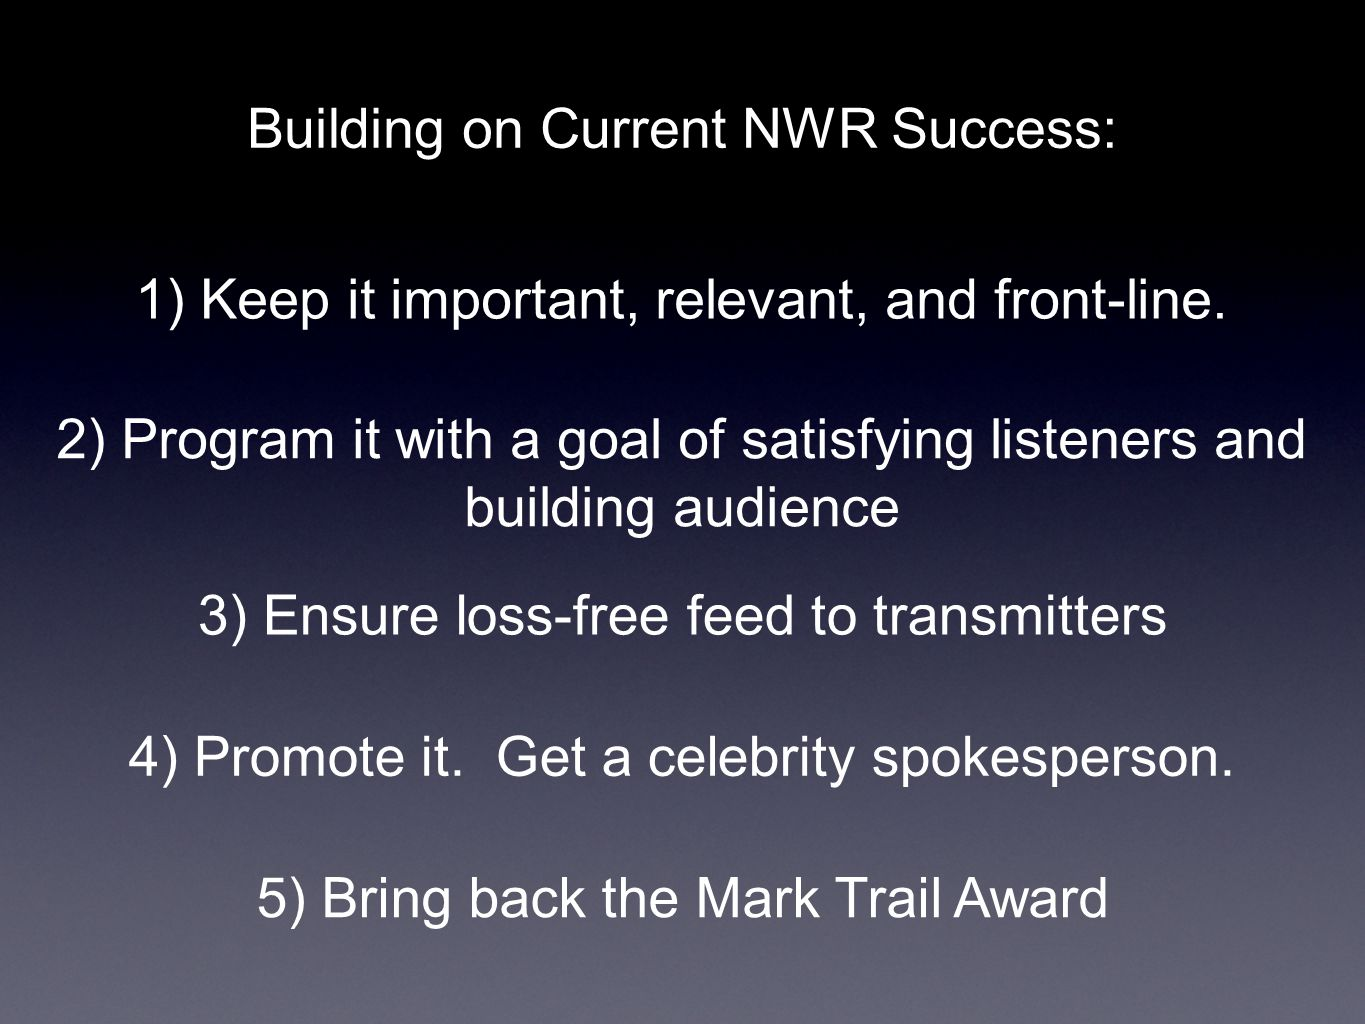 Building on Current NWR Success: 1) Keep it important, relevant, and front-line.